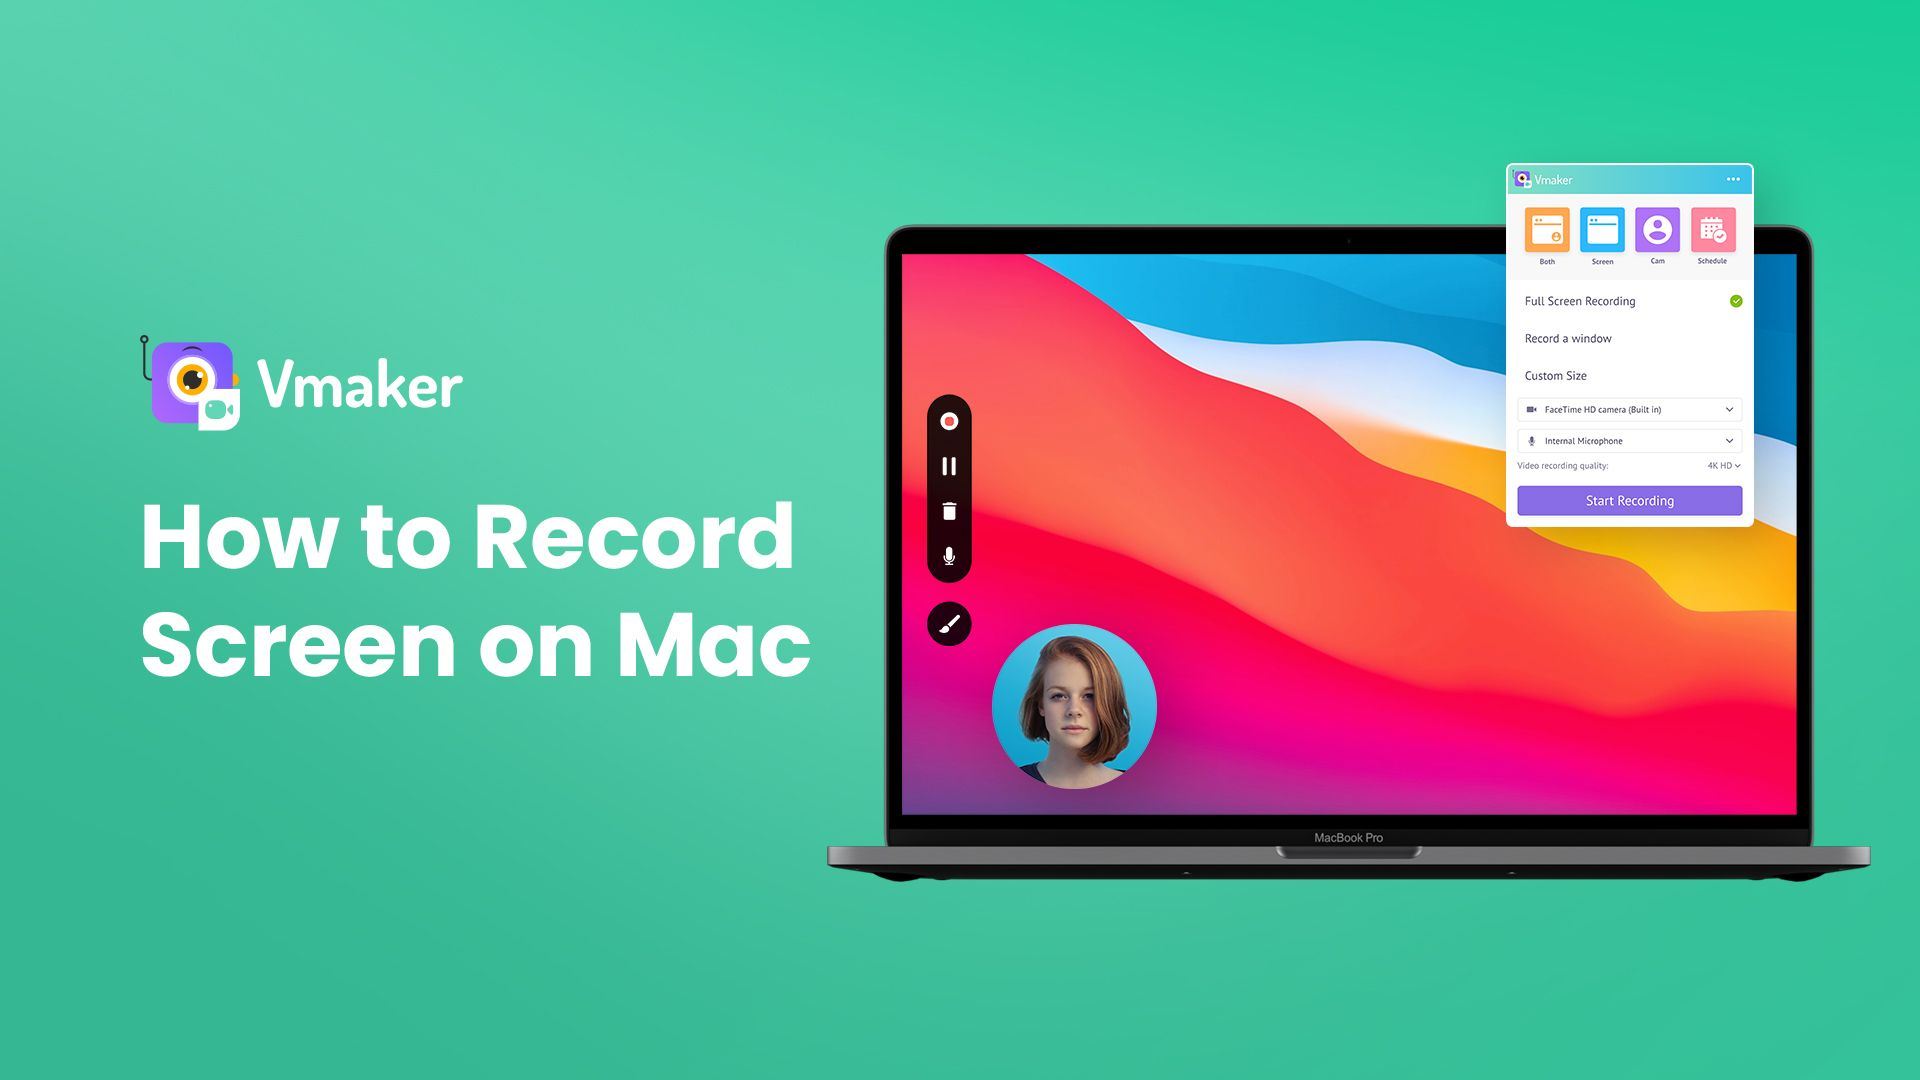 To get started with Vmaker's free screen capture software, watch the video below that shows how to screen capture video on mac.